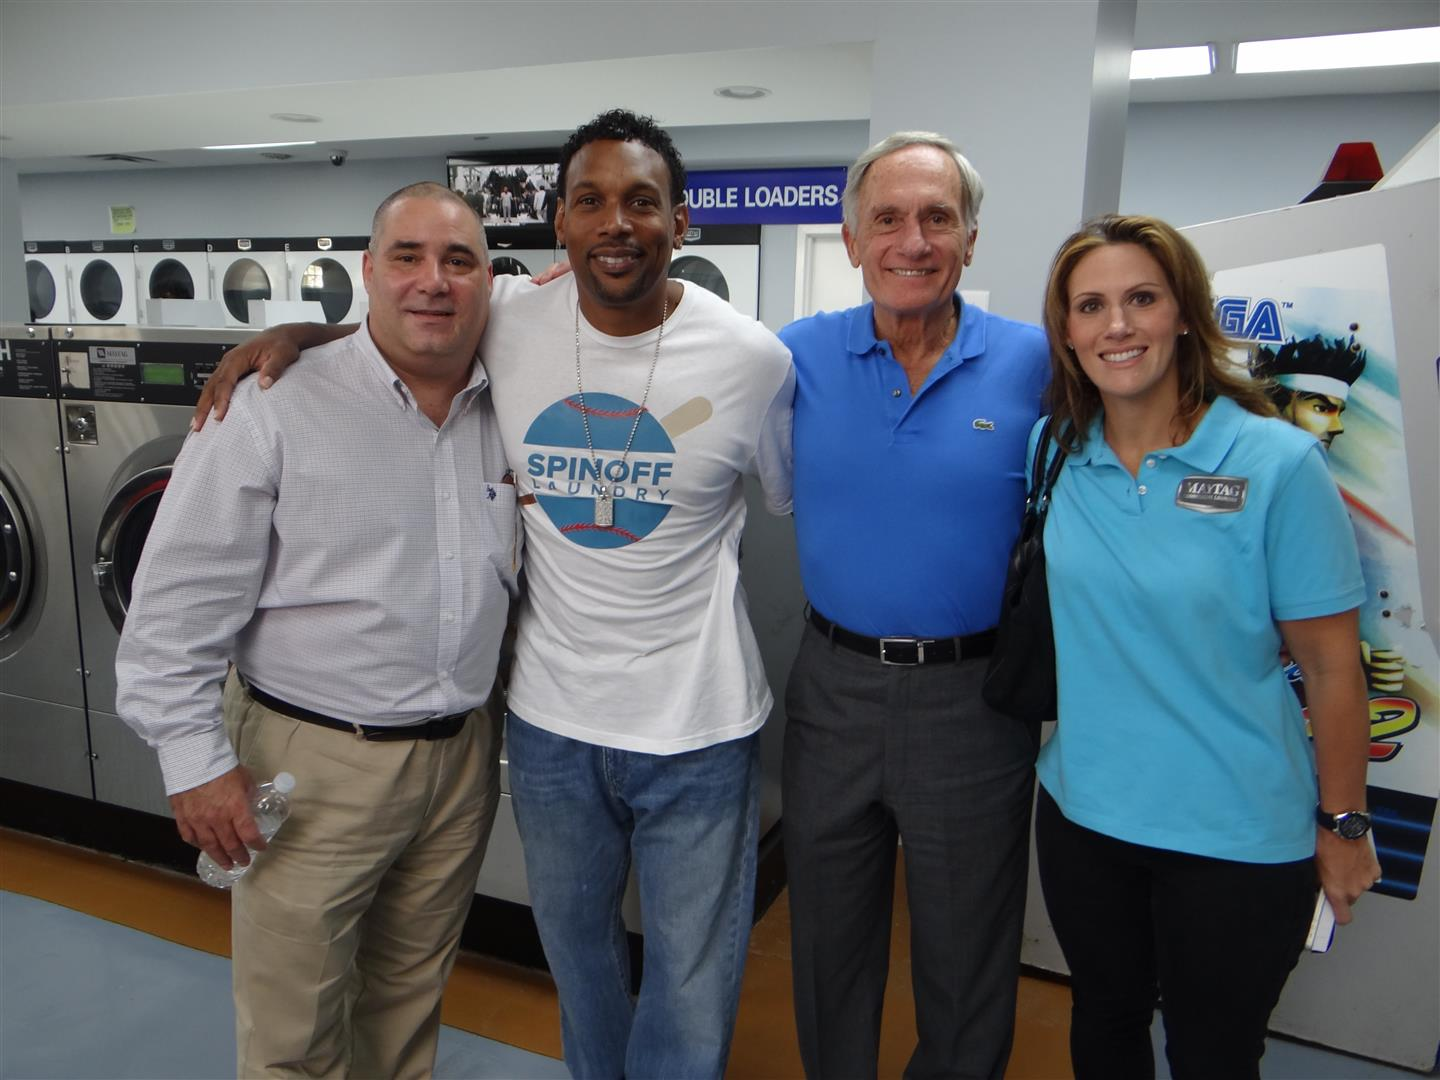 Greg Paci, sales representative for Equipment Marketers;Ernest (Bo) Donaldson, owner of Spin Off Laundry;Dick LaMaina, president of Equipment Marketers;and Katie Weitzman, assistant vice presidentof Equipment Marketers, celebrate the recent grand opening of Spin Off Laundry. (Photo: Maytag Commercial Laundry)